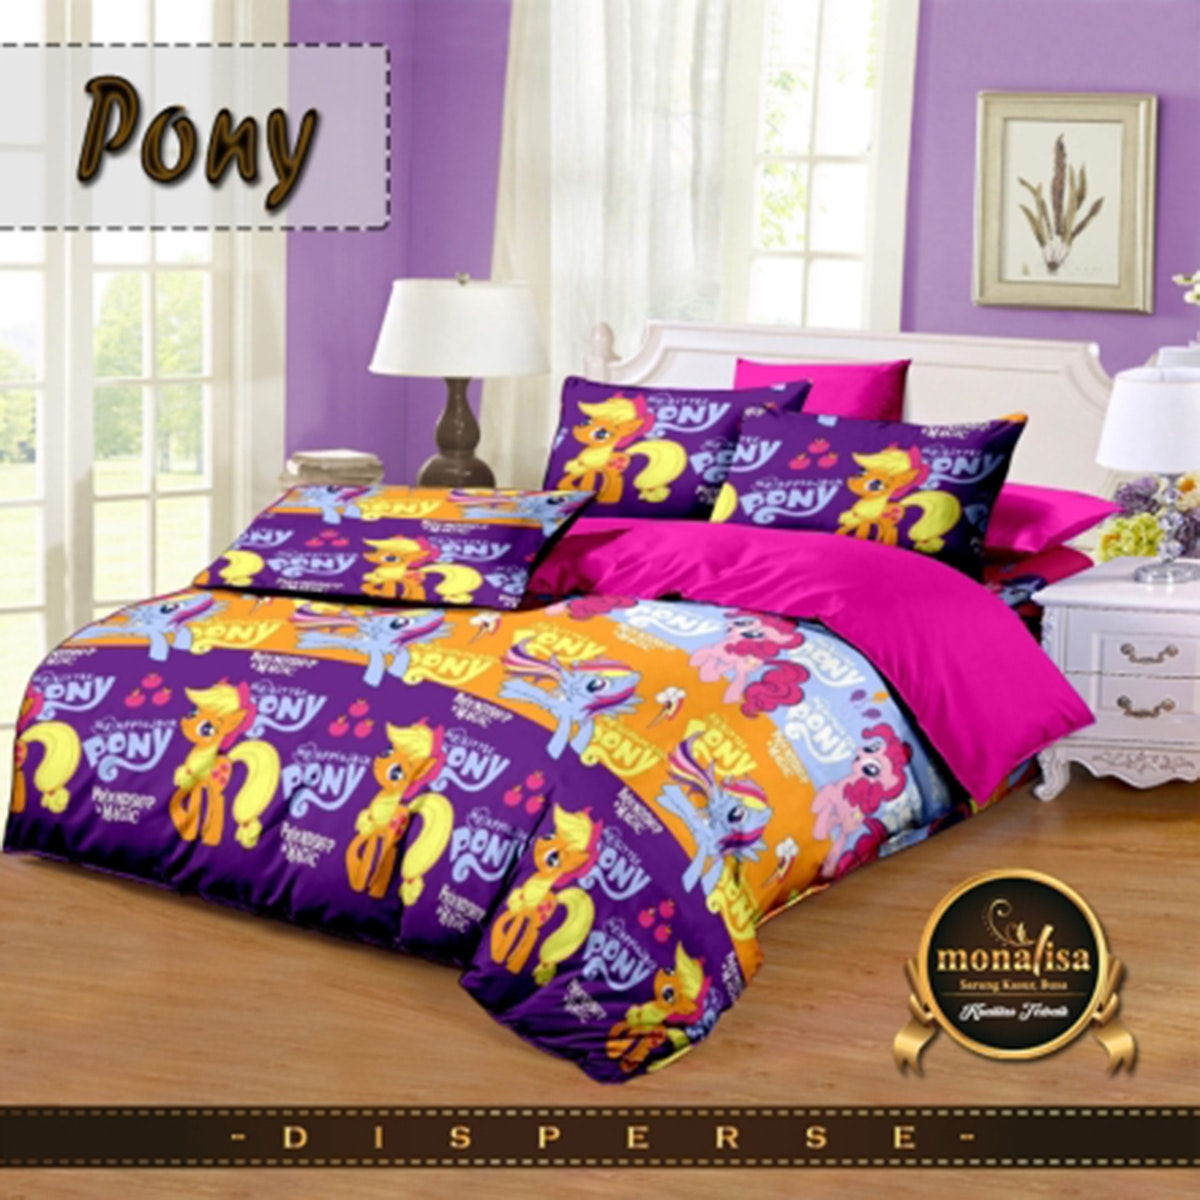 Pesona Bed Cover Disperse Pony Lama Uk 210 x 200